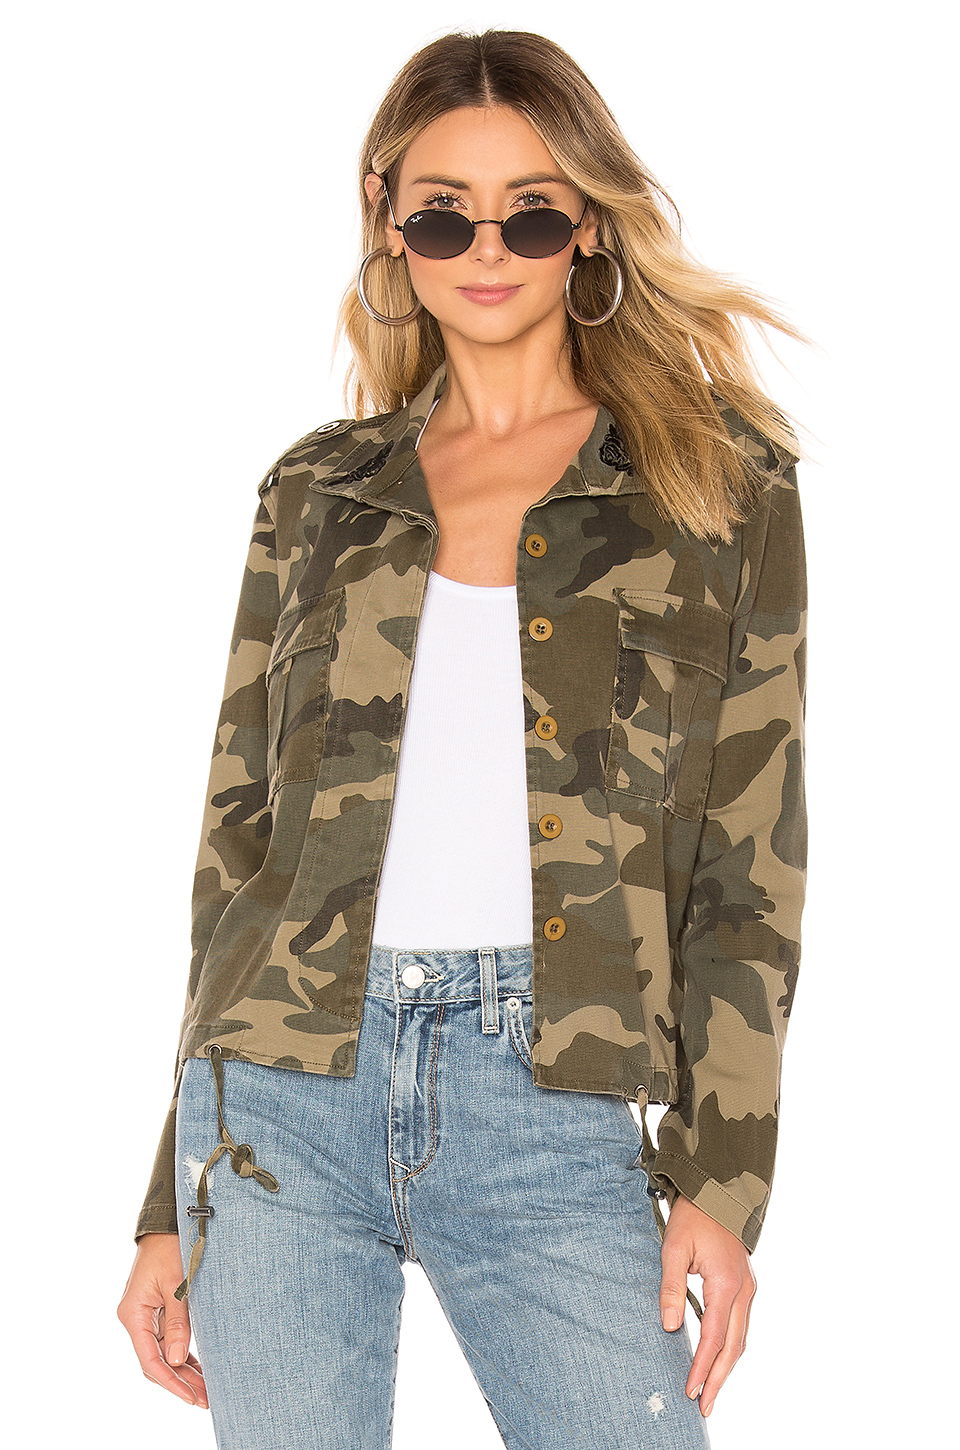 d903ec13fa5 Buy Original KENDALL + KYLIE Embroidery Camo Jacket at Indonesia ...